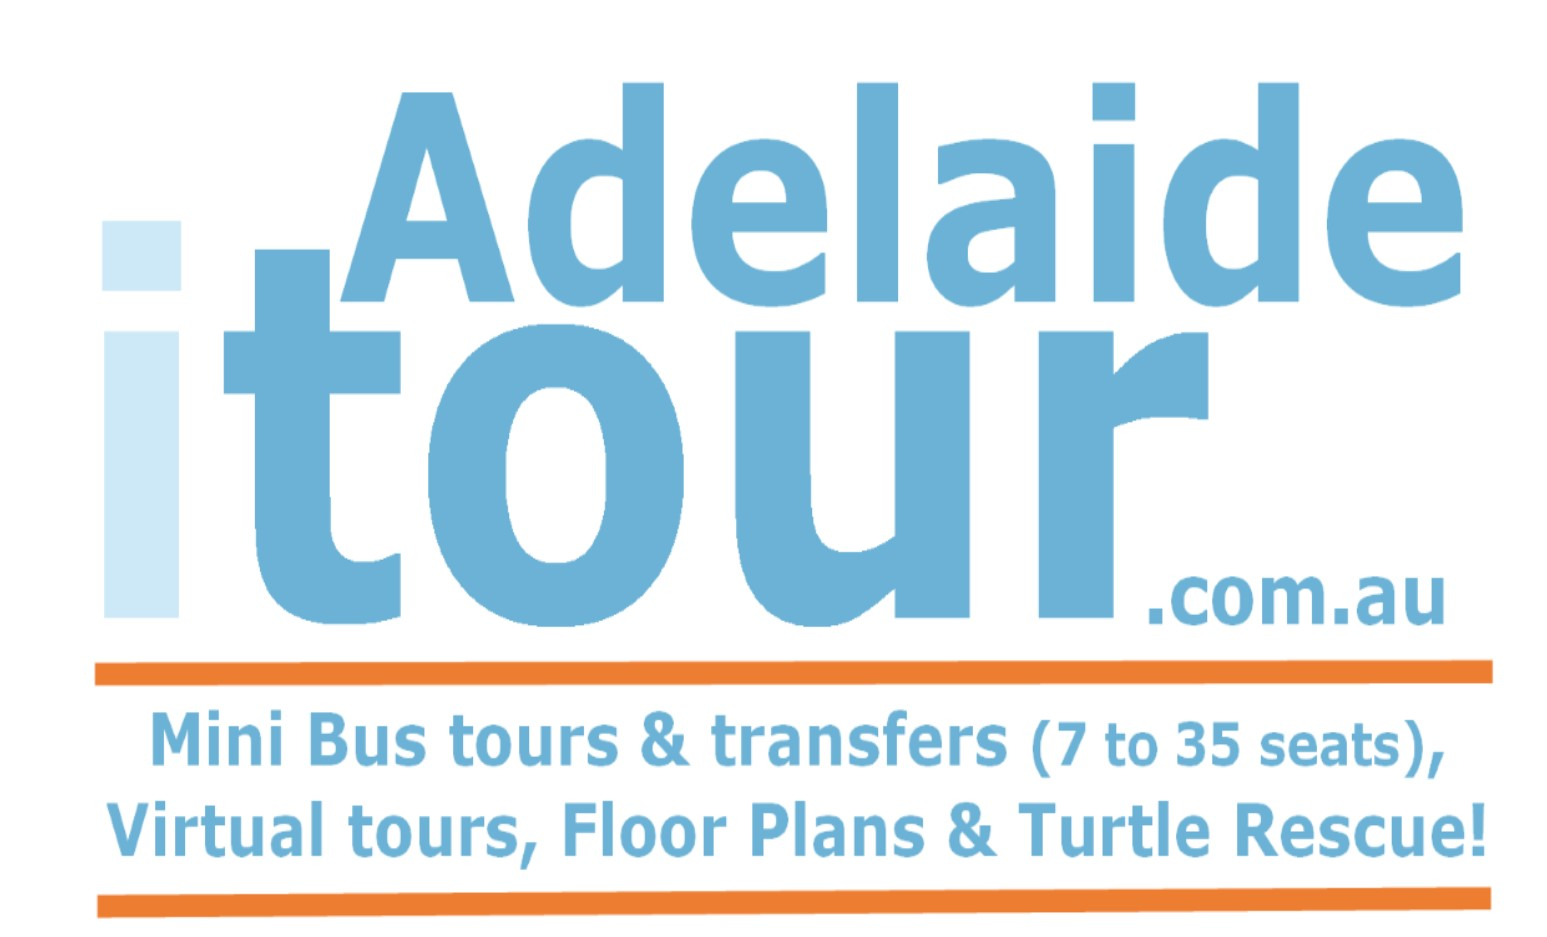 Mini Bus tours